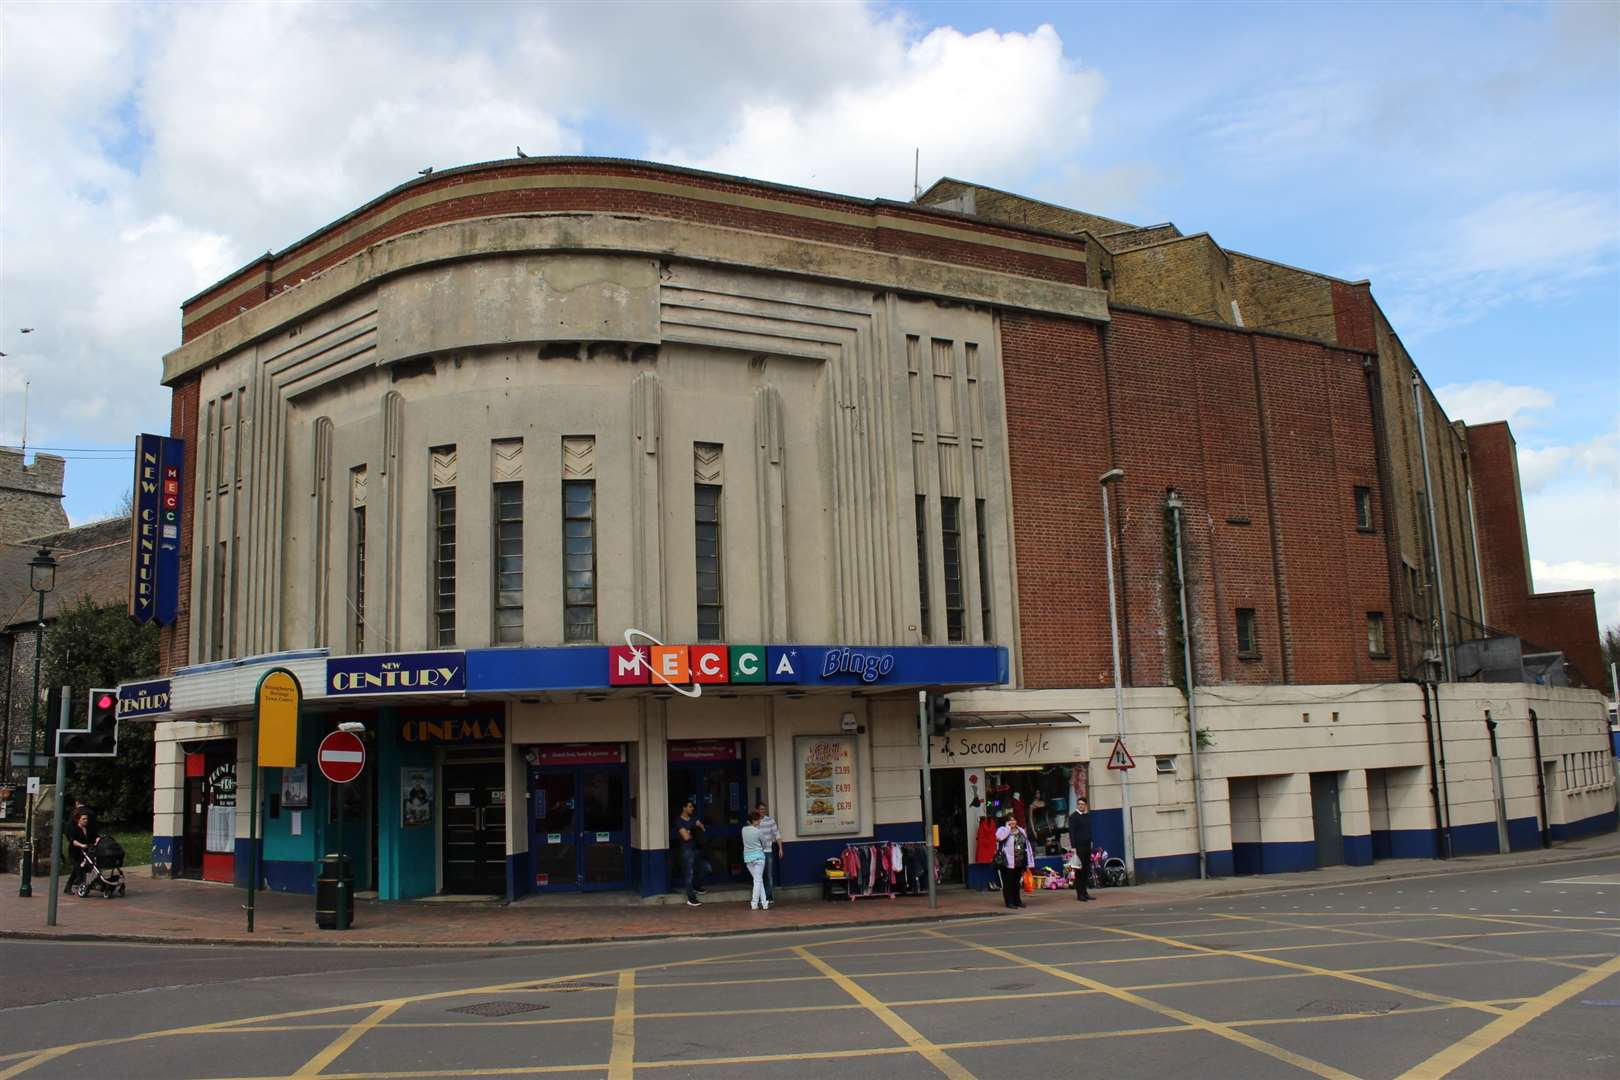 New Century Cinema, in Sittingbourne, is planning to reopen on May 17.